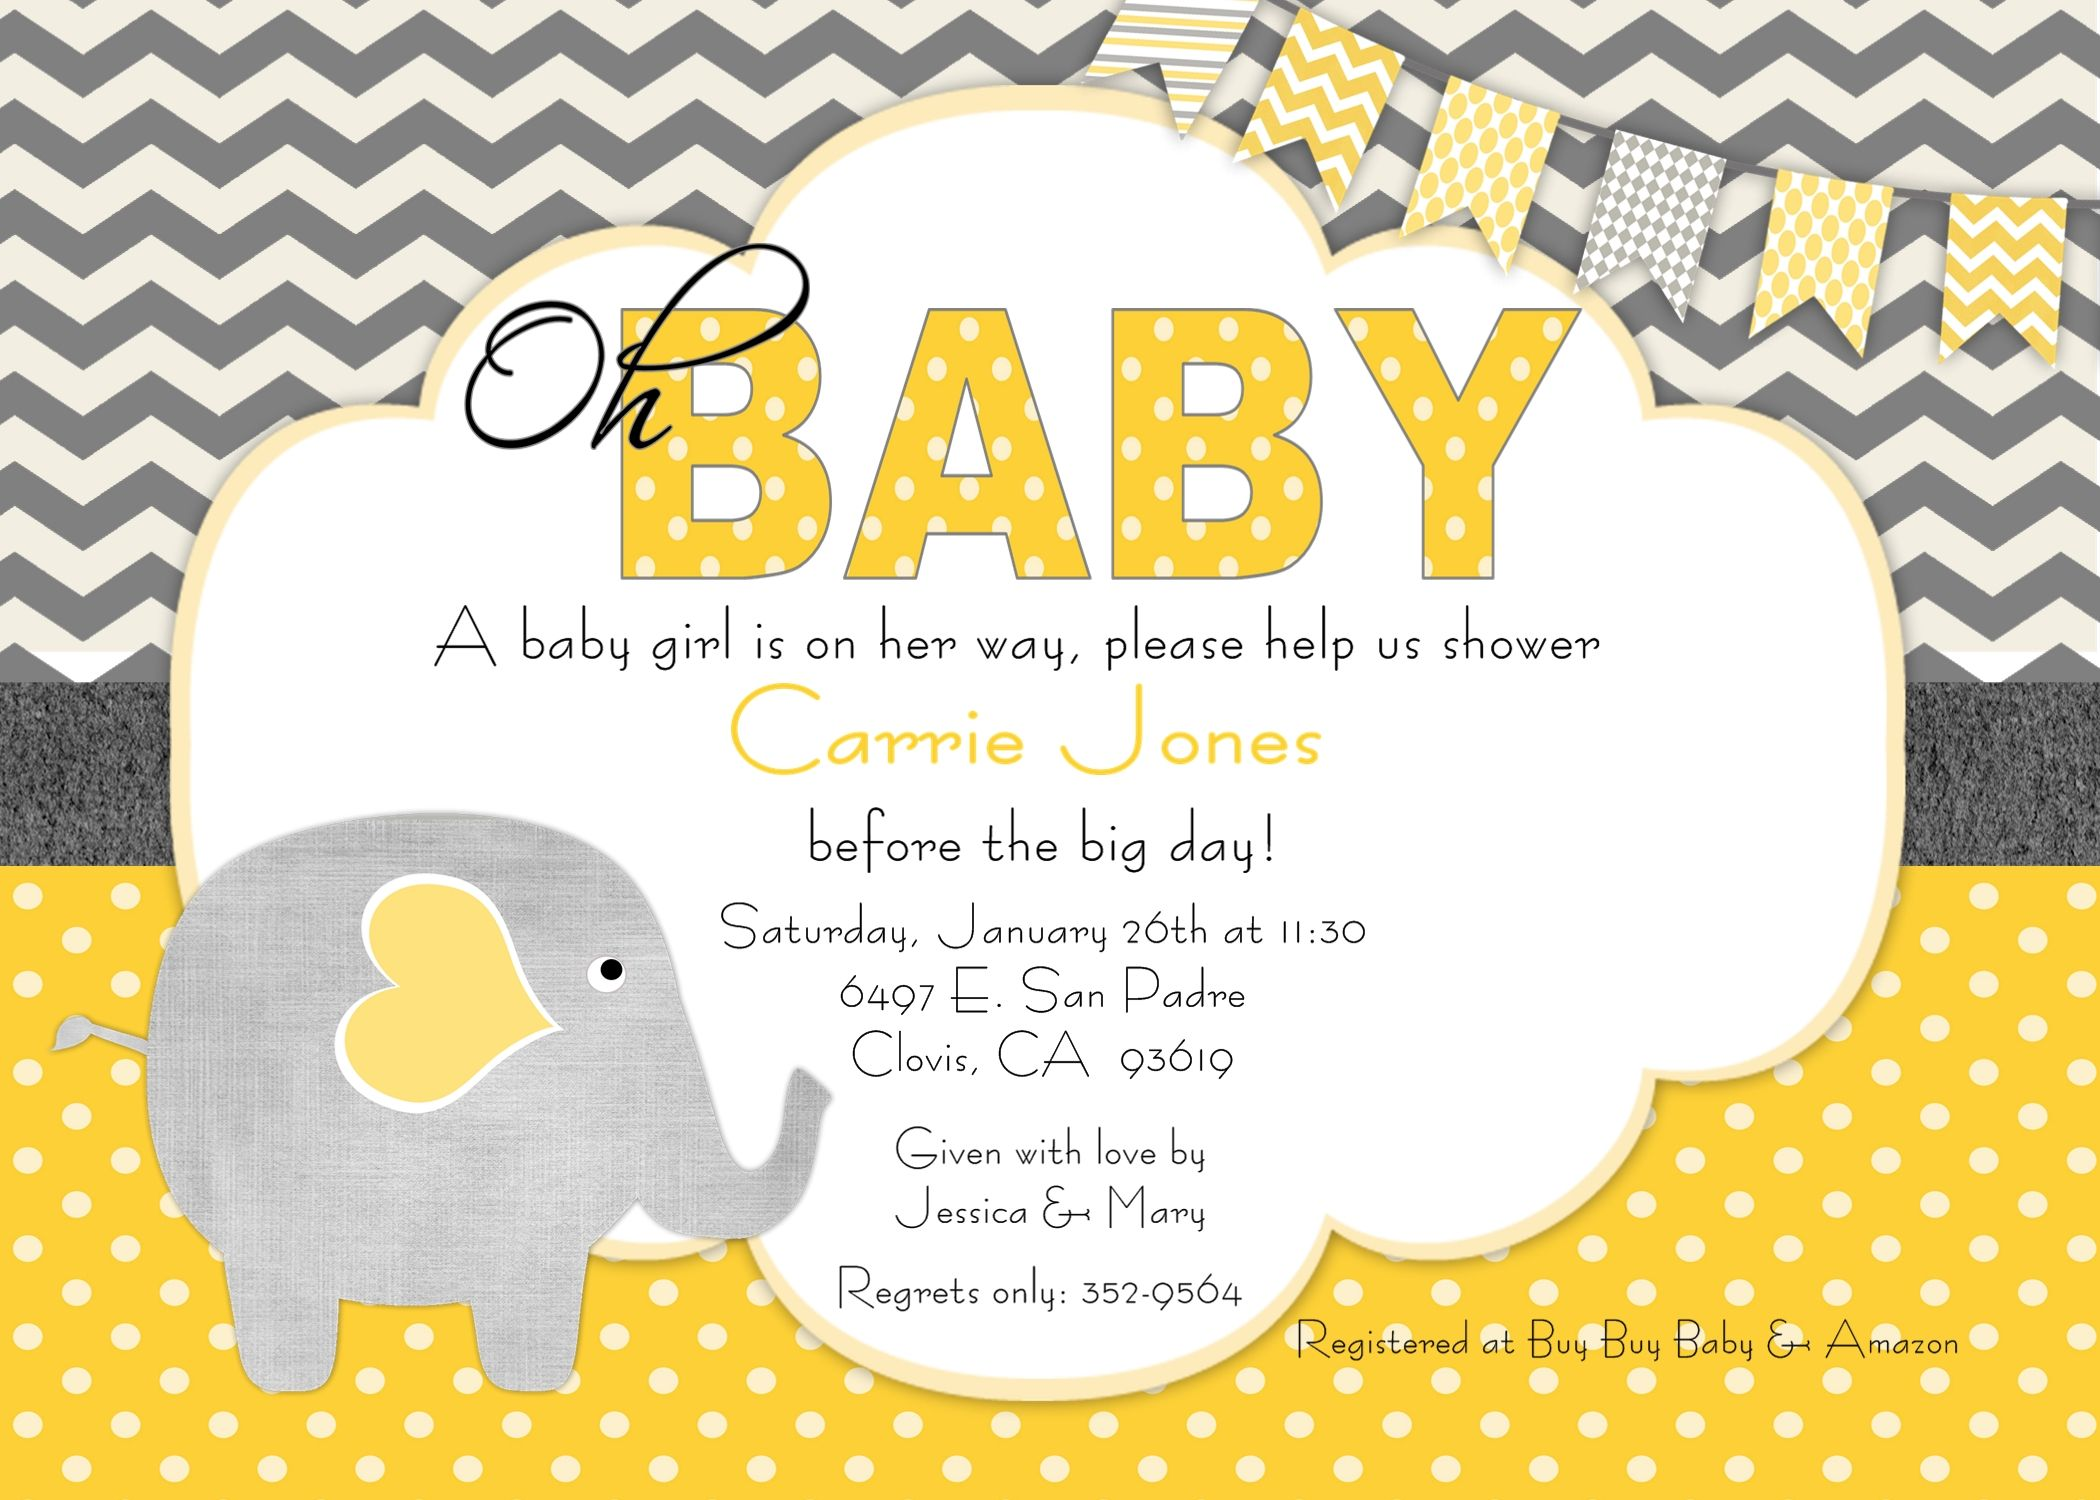 yellow and grey baby shower decorations chevron it's a girl banner, Baby shower invitations